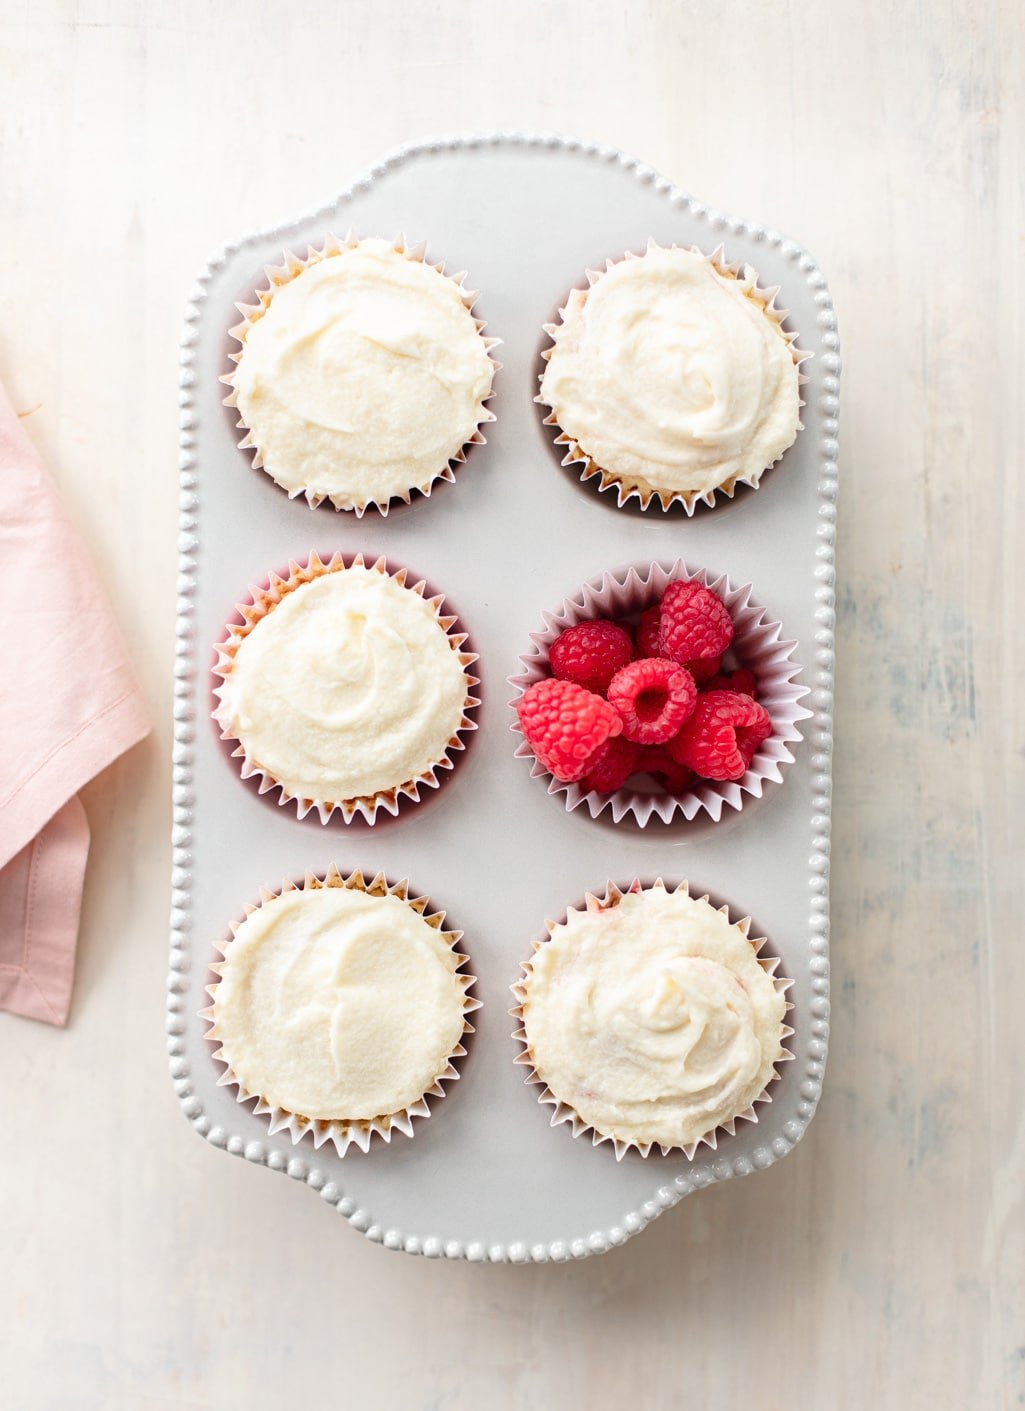 Ultimate Vanilla Cupcakes with Fresh Raspberries